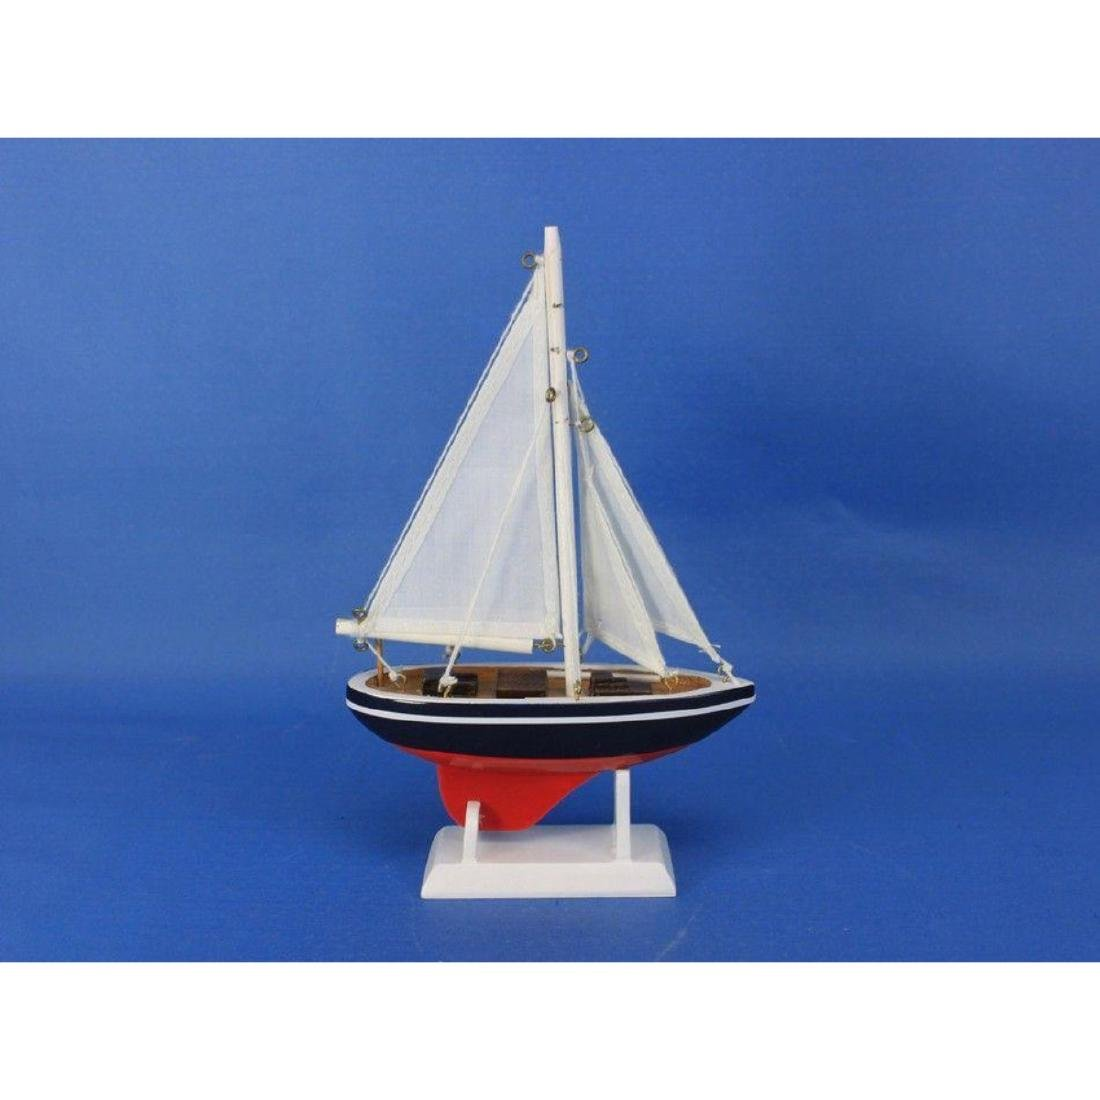 "Wooden American Sailer Model Sailboat Decoration 9"" - 4"